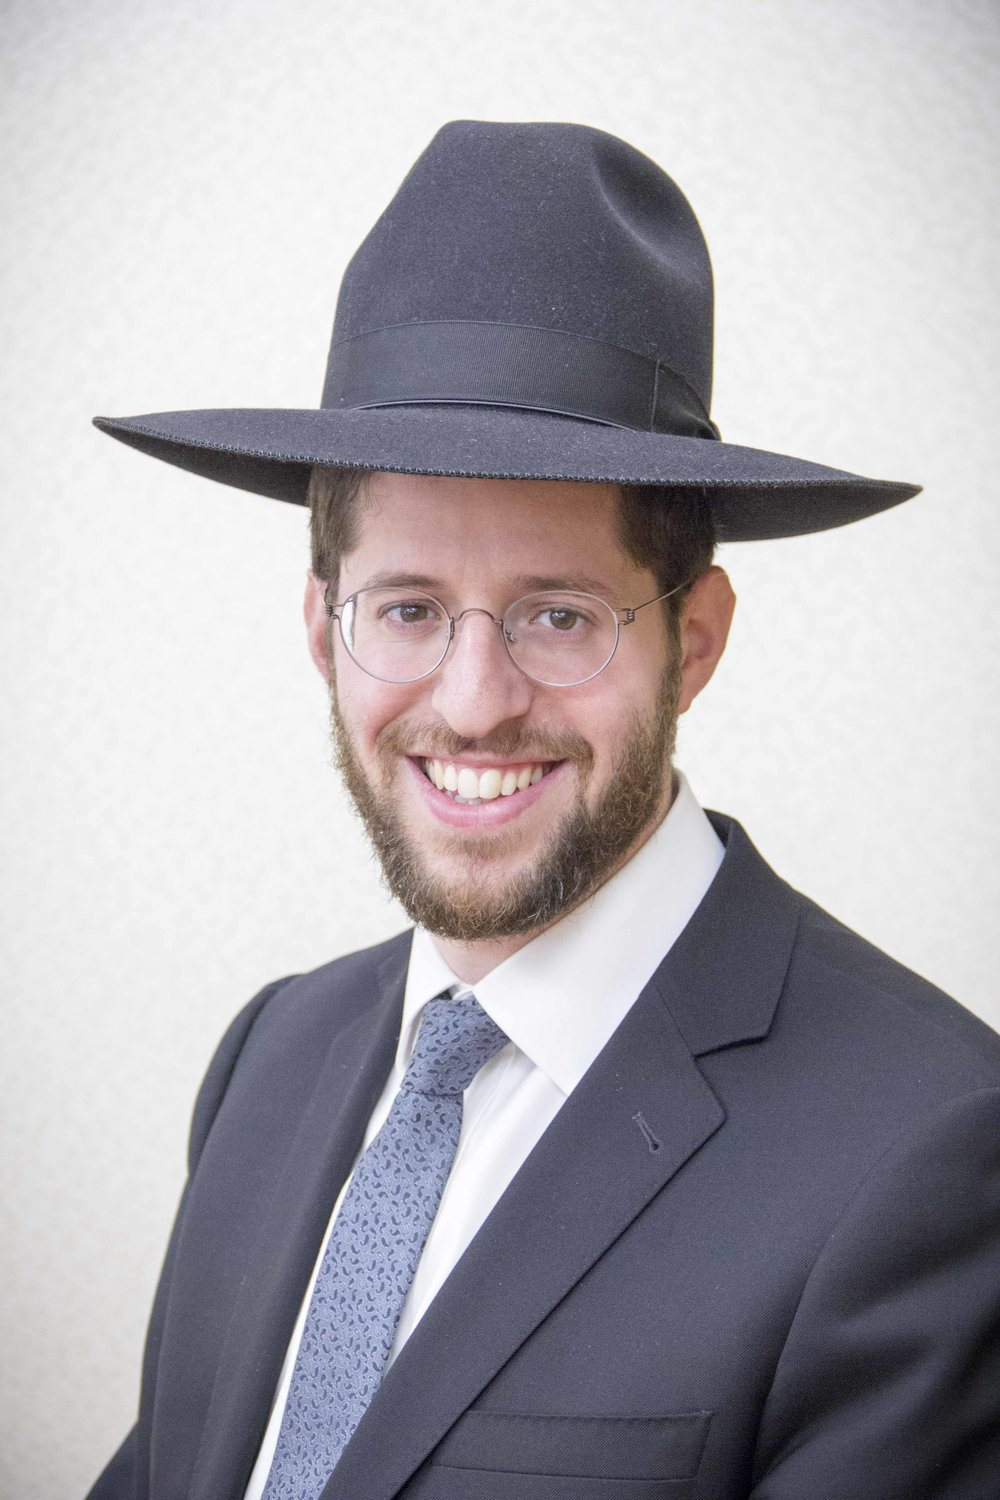 Rabbi Shloime Rothstein